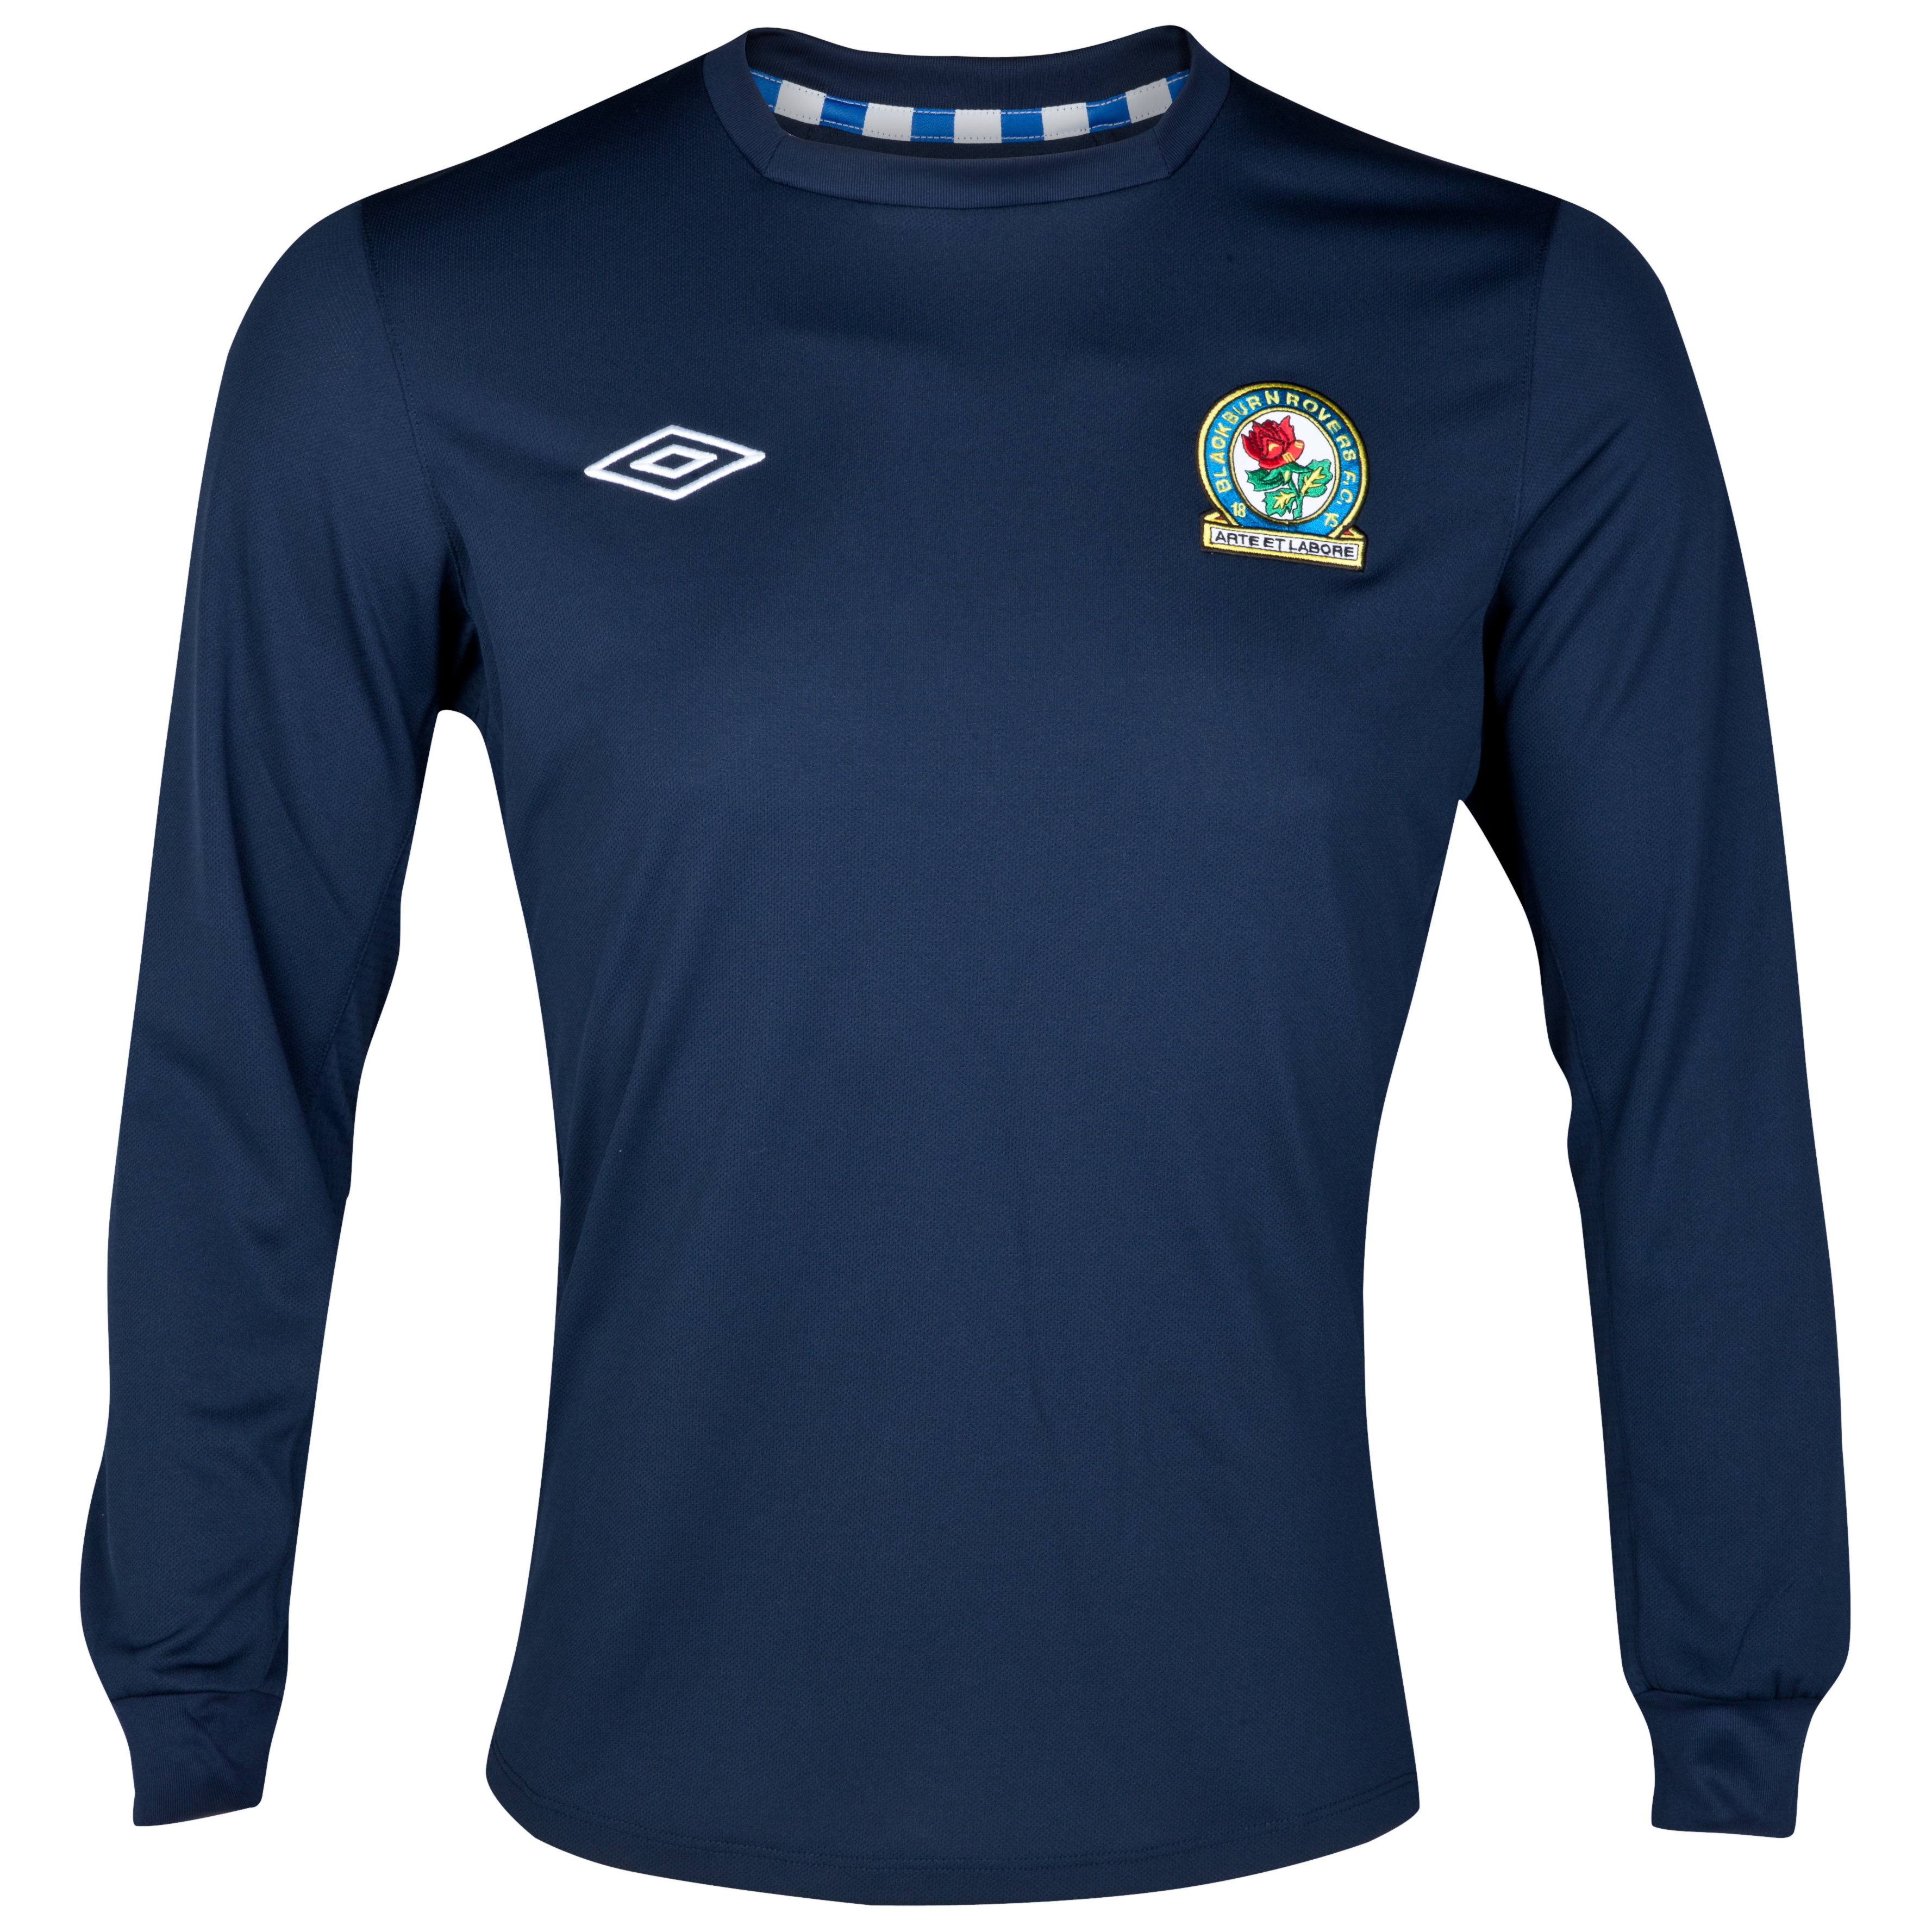 Blackburn Rovers Away Shirt 2012/13 - Long Sleeve